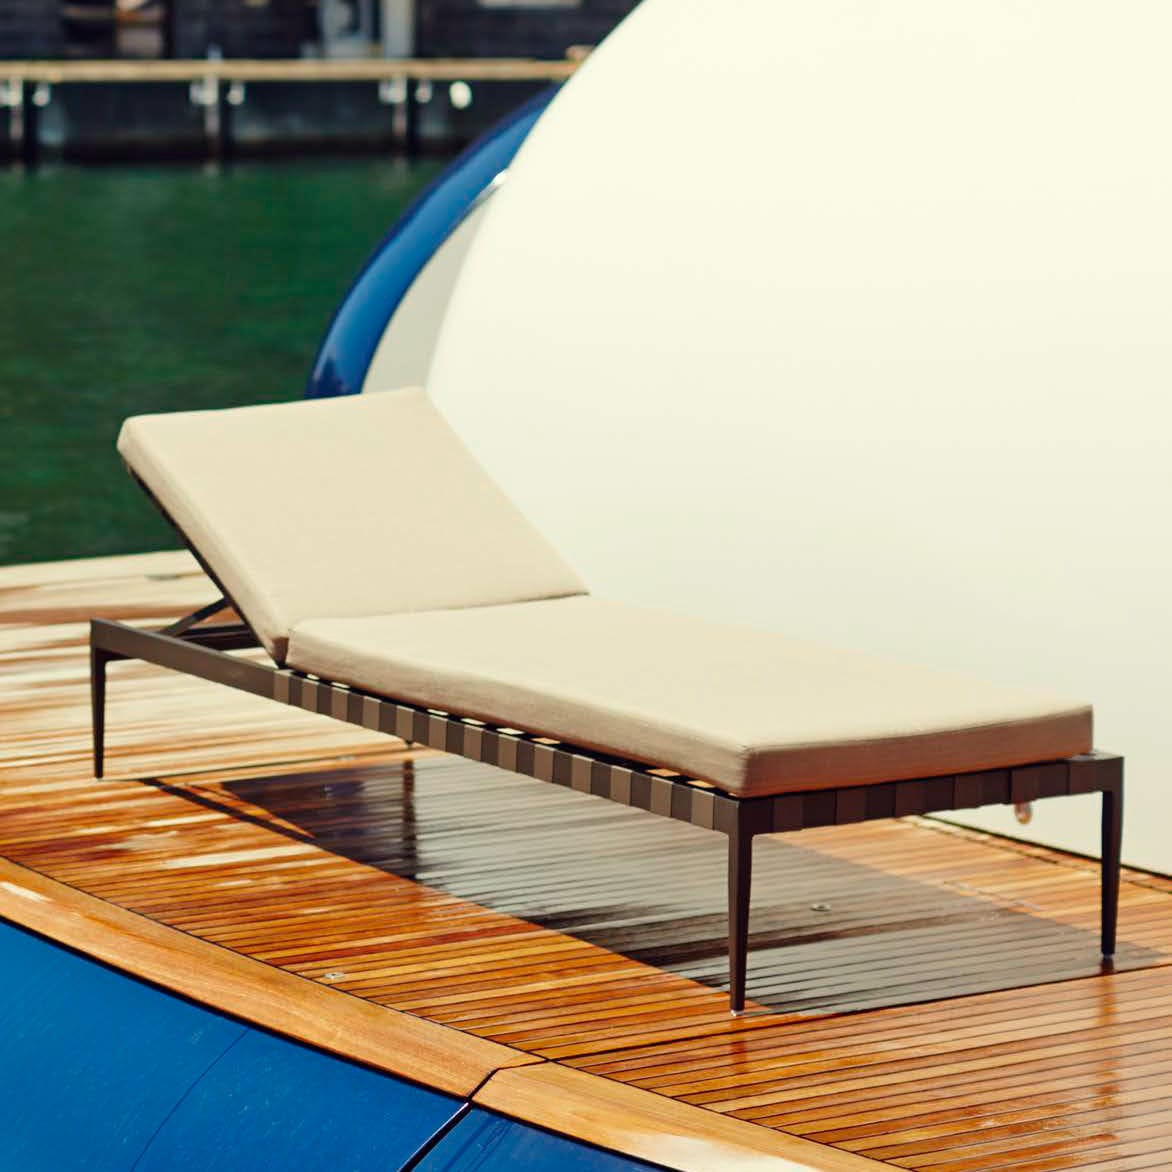 Contemporary chaise longue / aluminum / outdoor / garden - PIER by ... - Contemporary chaise longue / aluminum / outdoor / garden PIER by Nicholas &  Harrison Condos Harbour ...